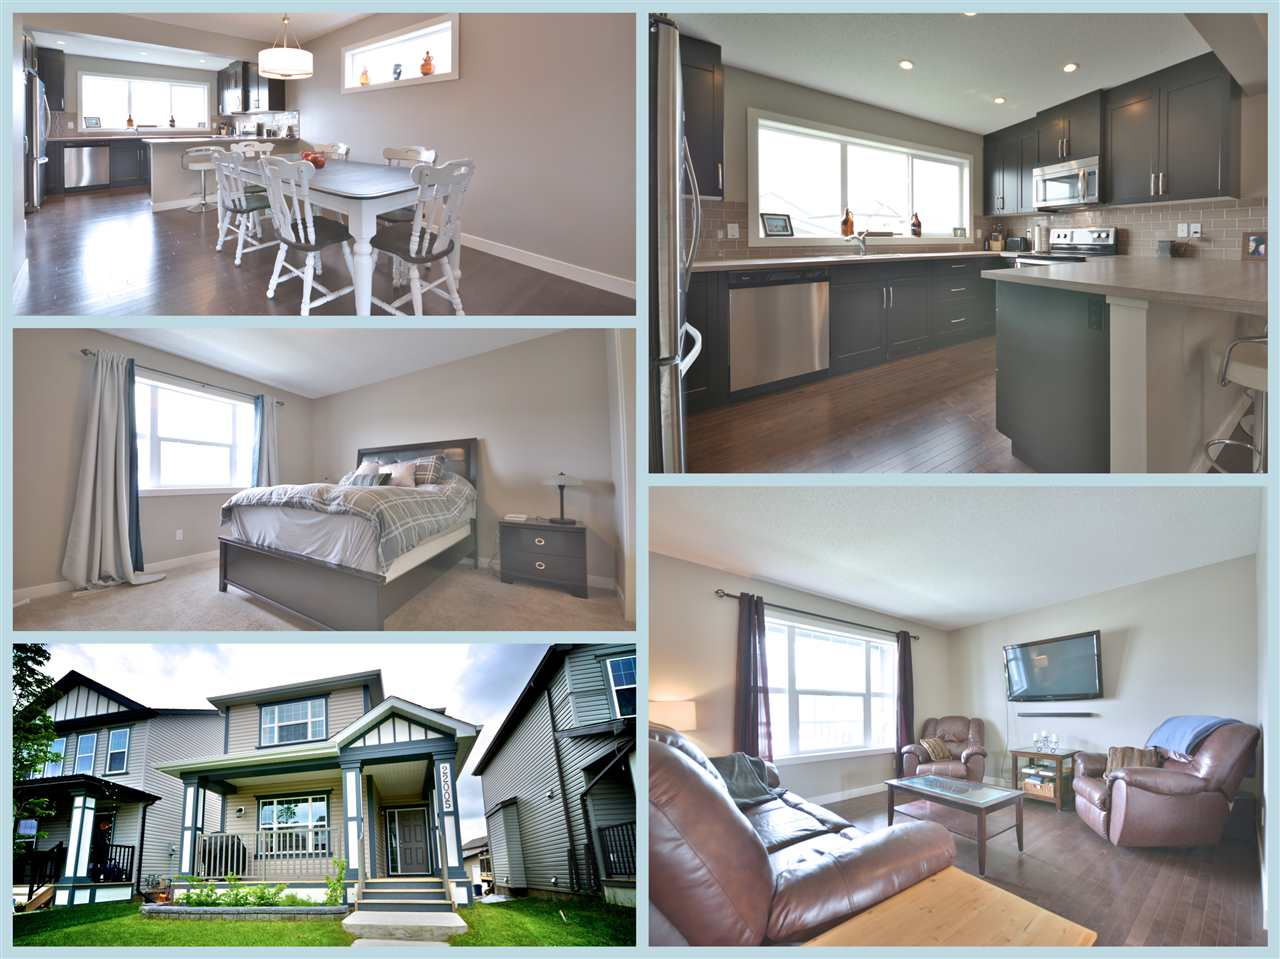 Main Photo: 22005 99A Avenue in Edmonton: Zone 58 House for sale : MLS® # E4069764